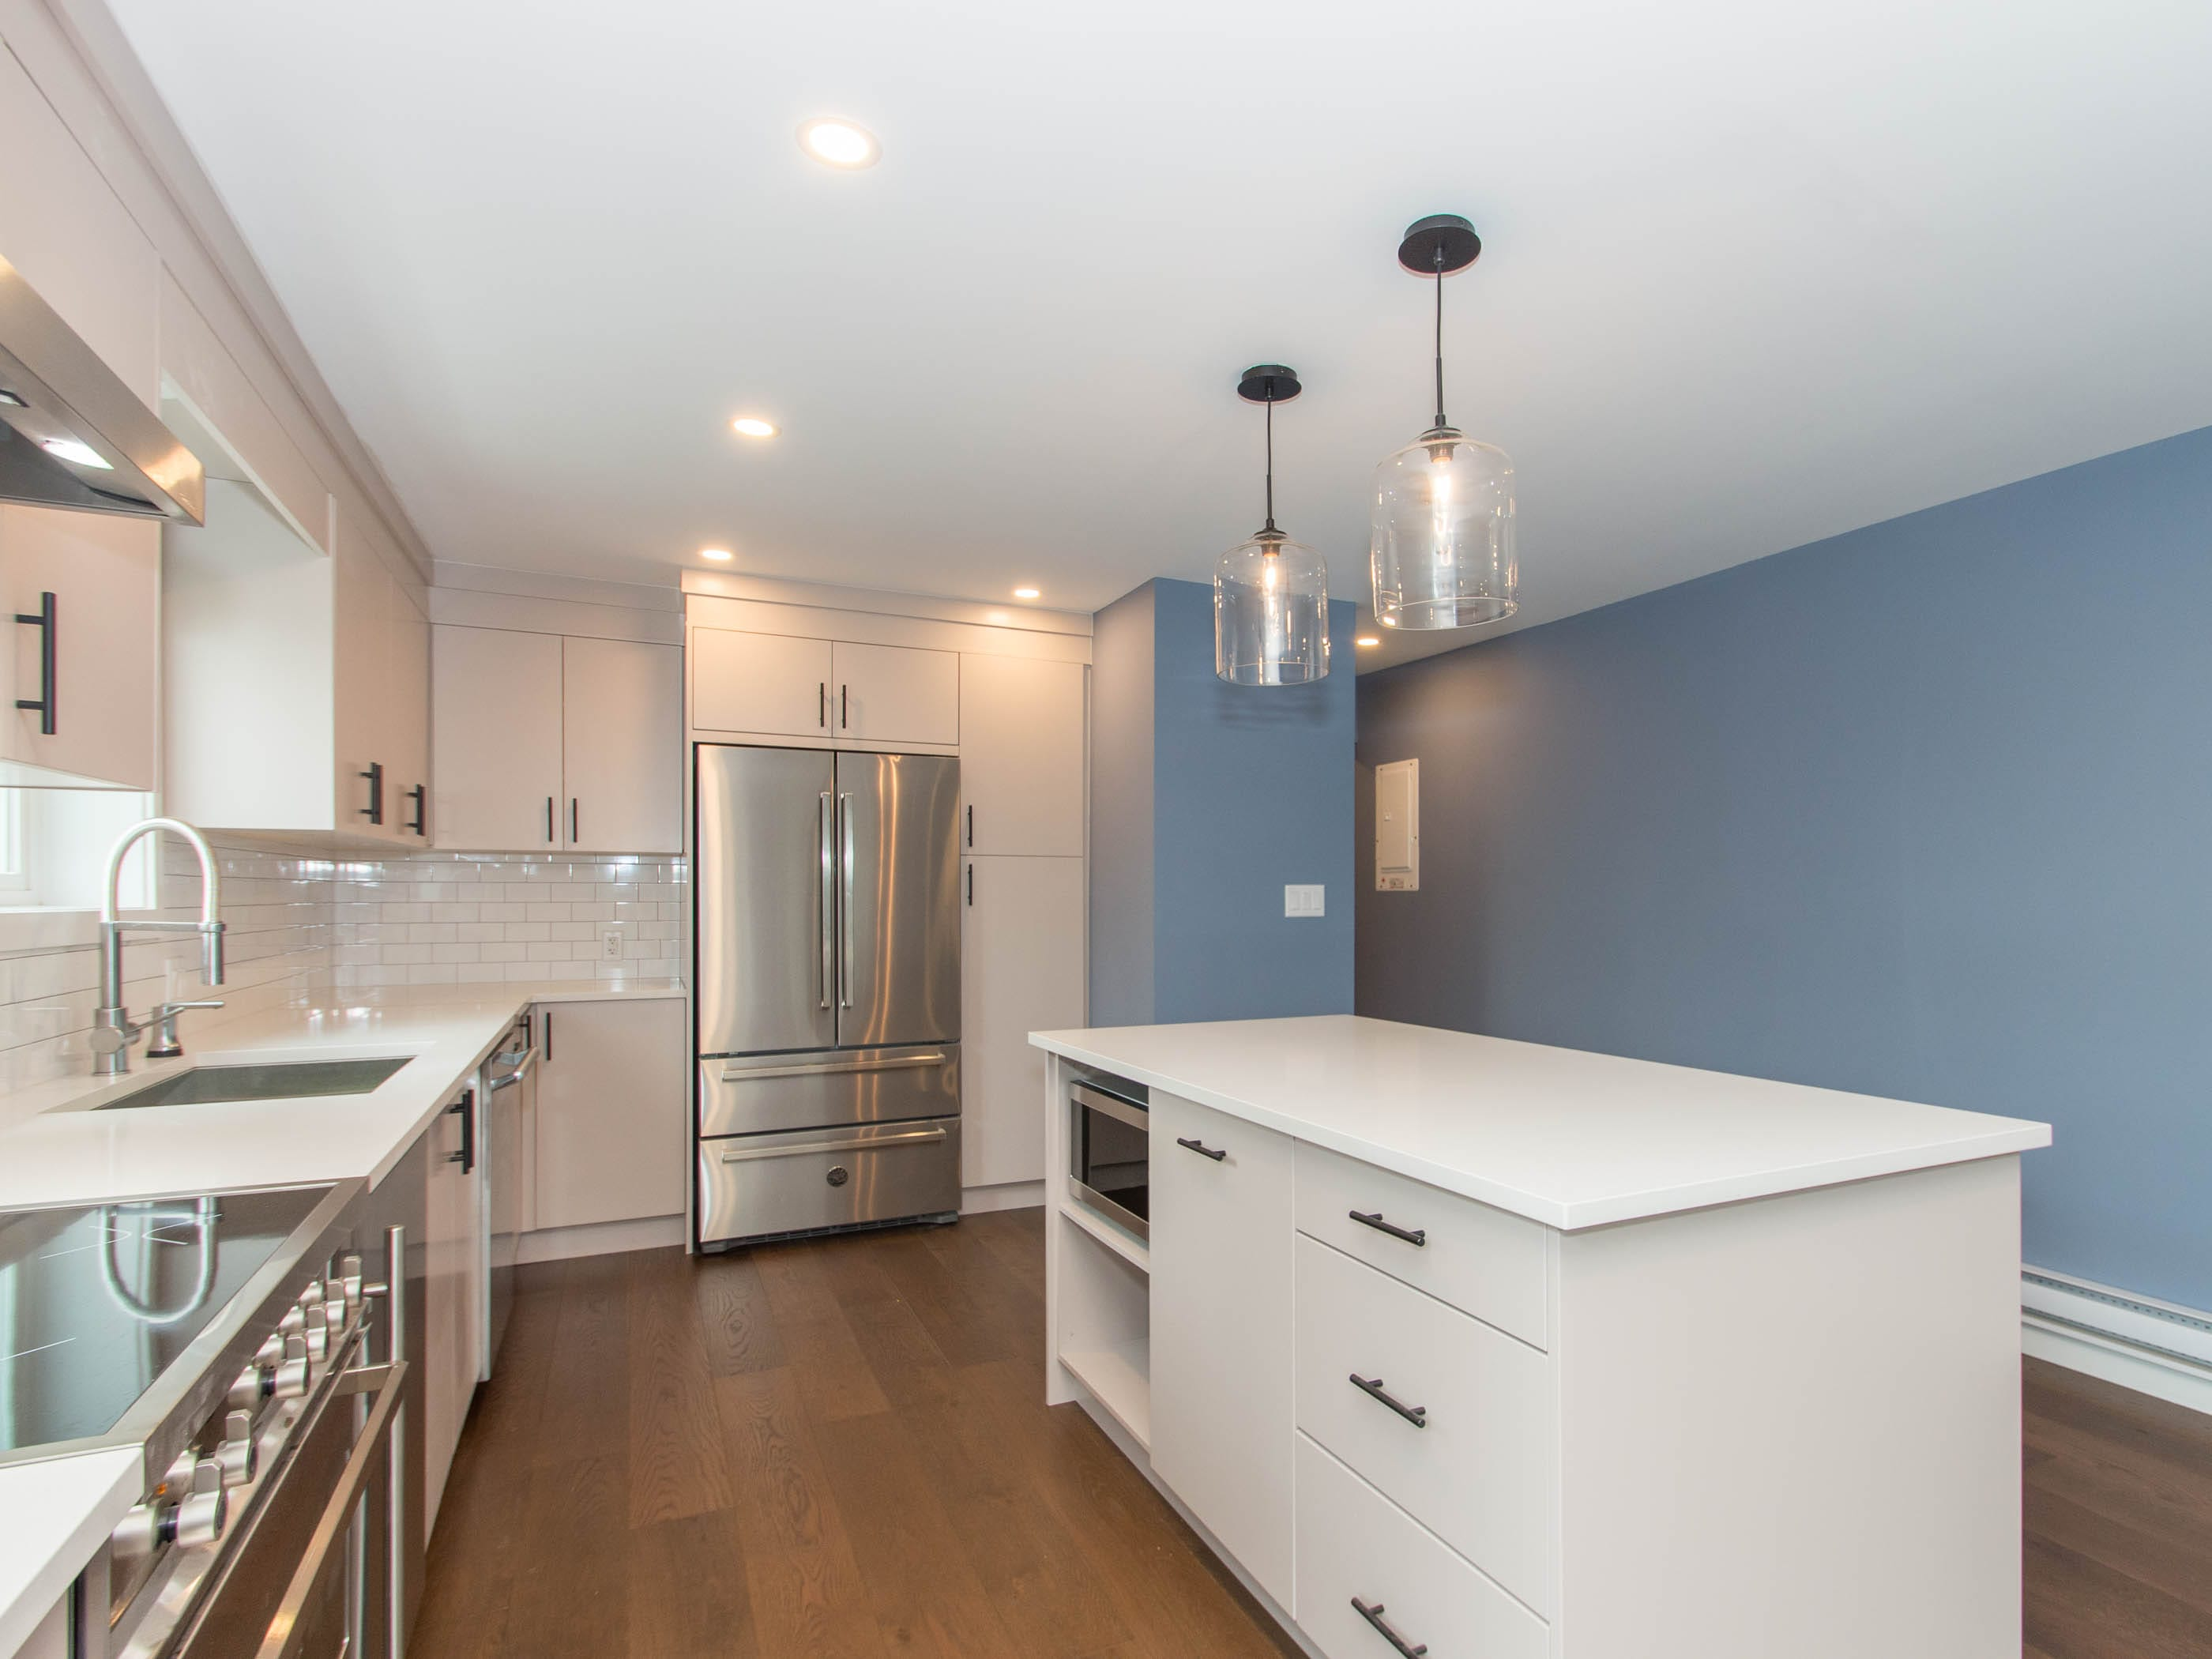 Langley general contractor for kitchen renovations